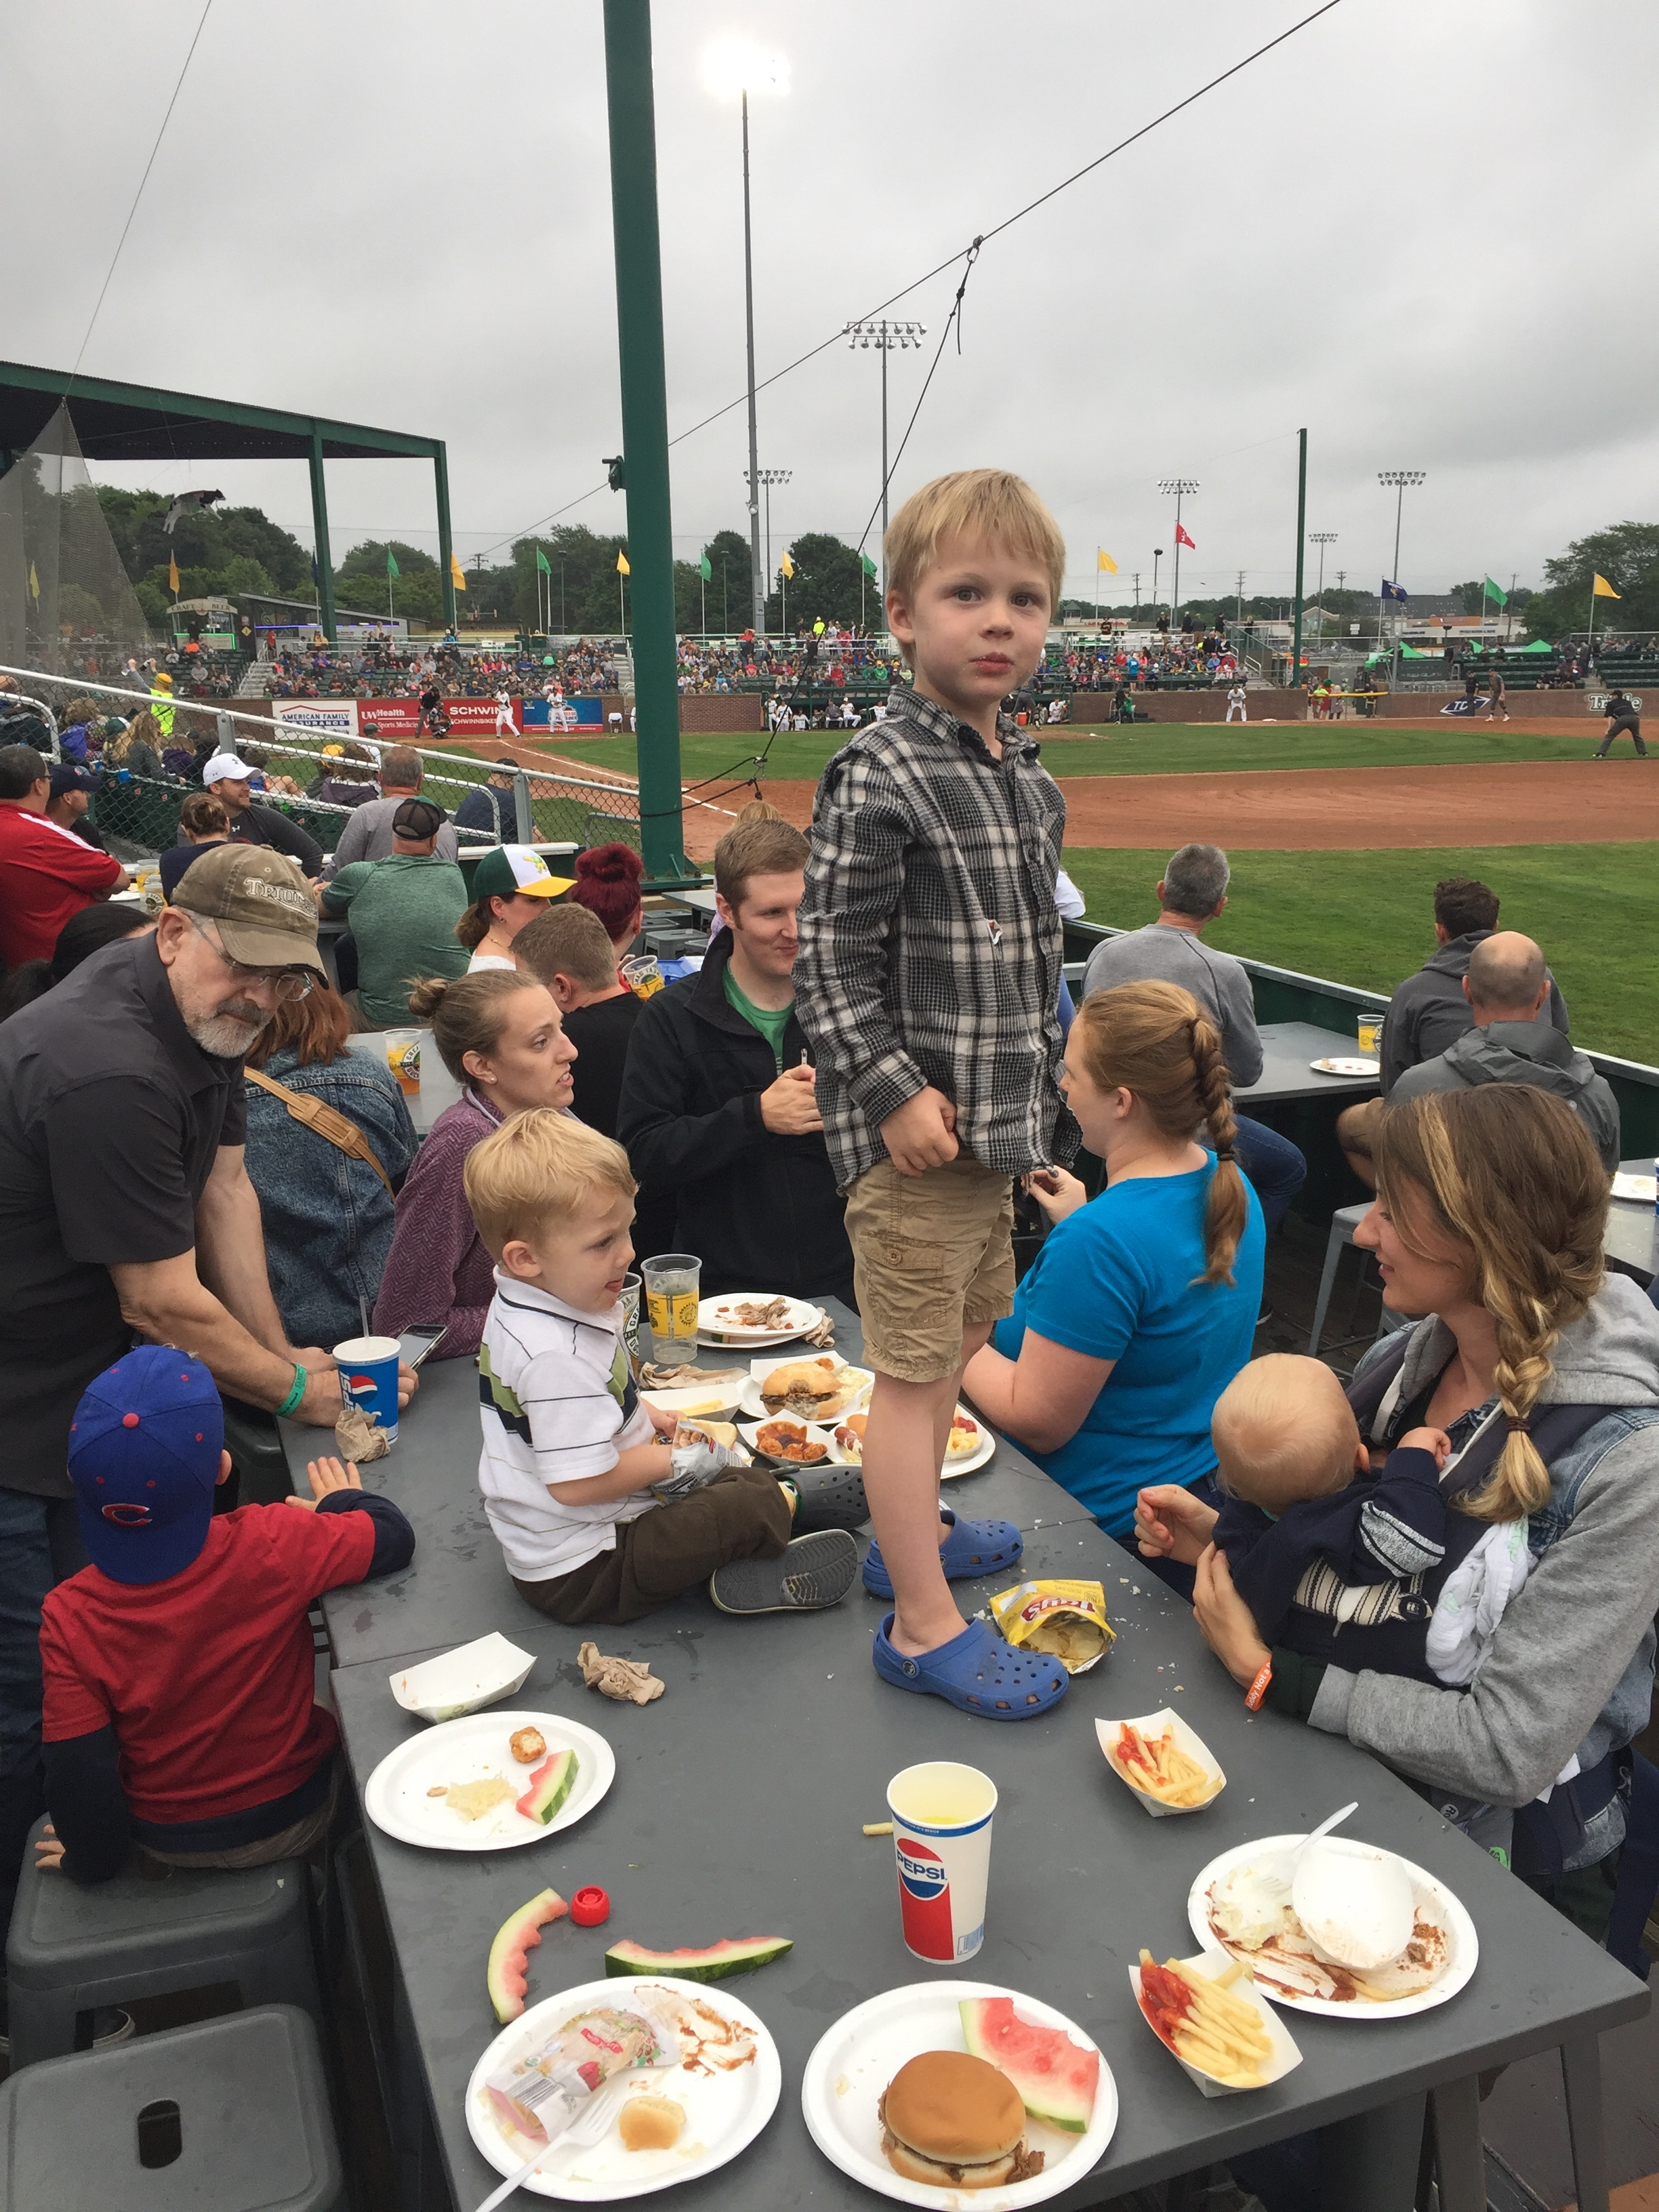 Mallards Game - Baseball and food with friends